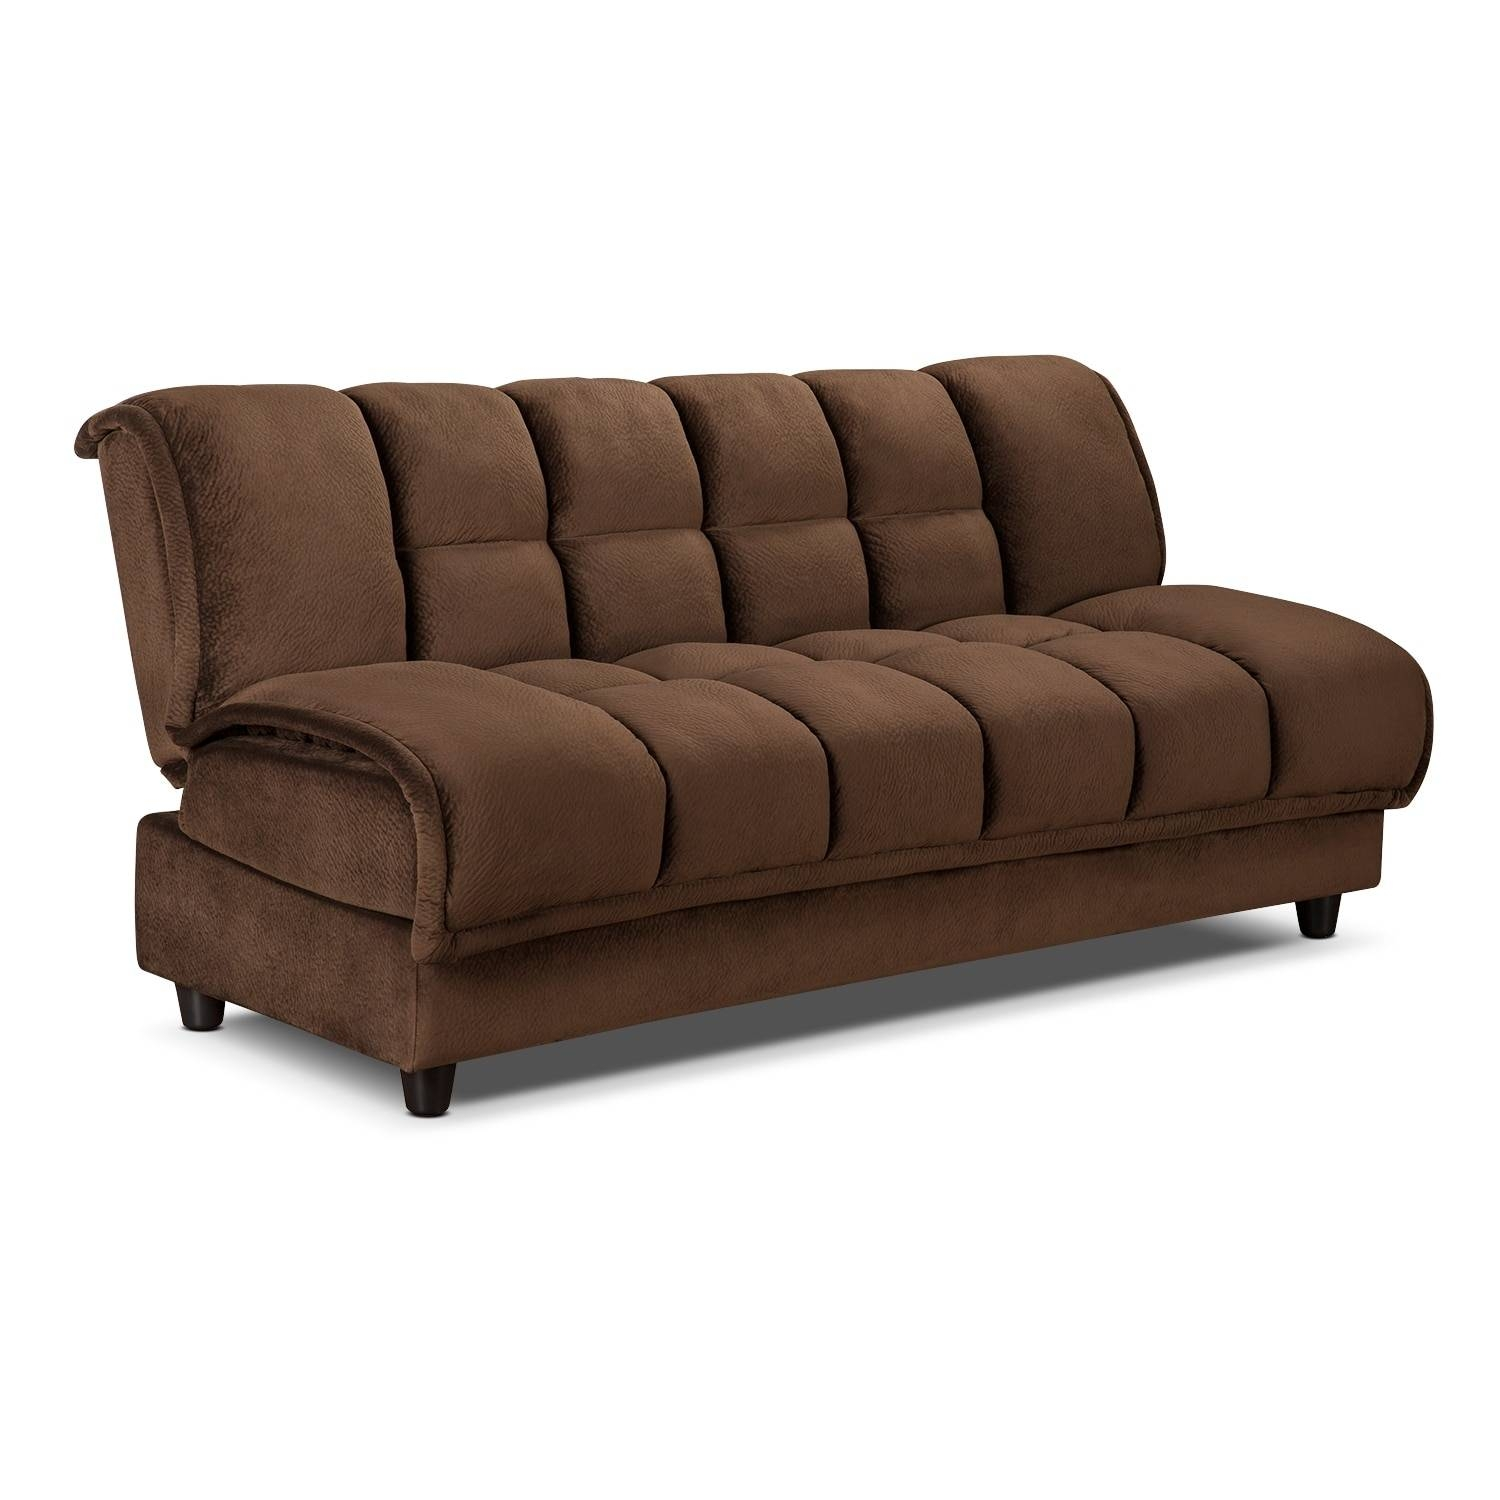 Sleeper Sofas | Value City Furniture | Value City Furniture regarding Sofas With Beds (Image 15 of 30)